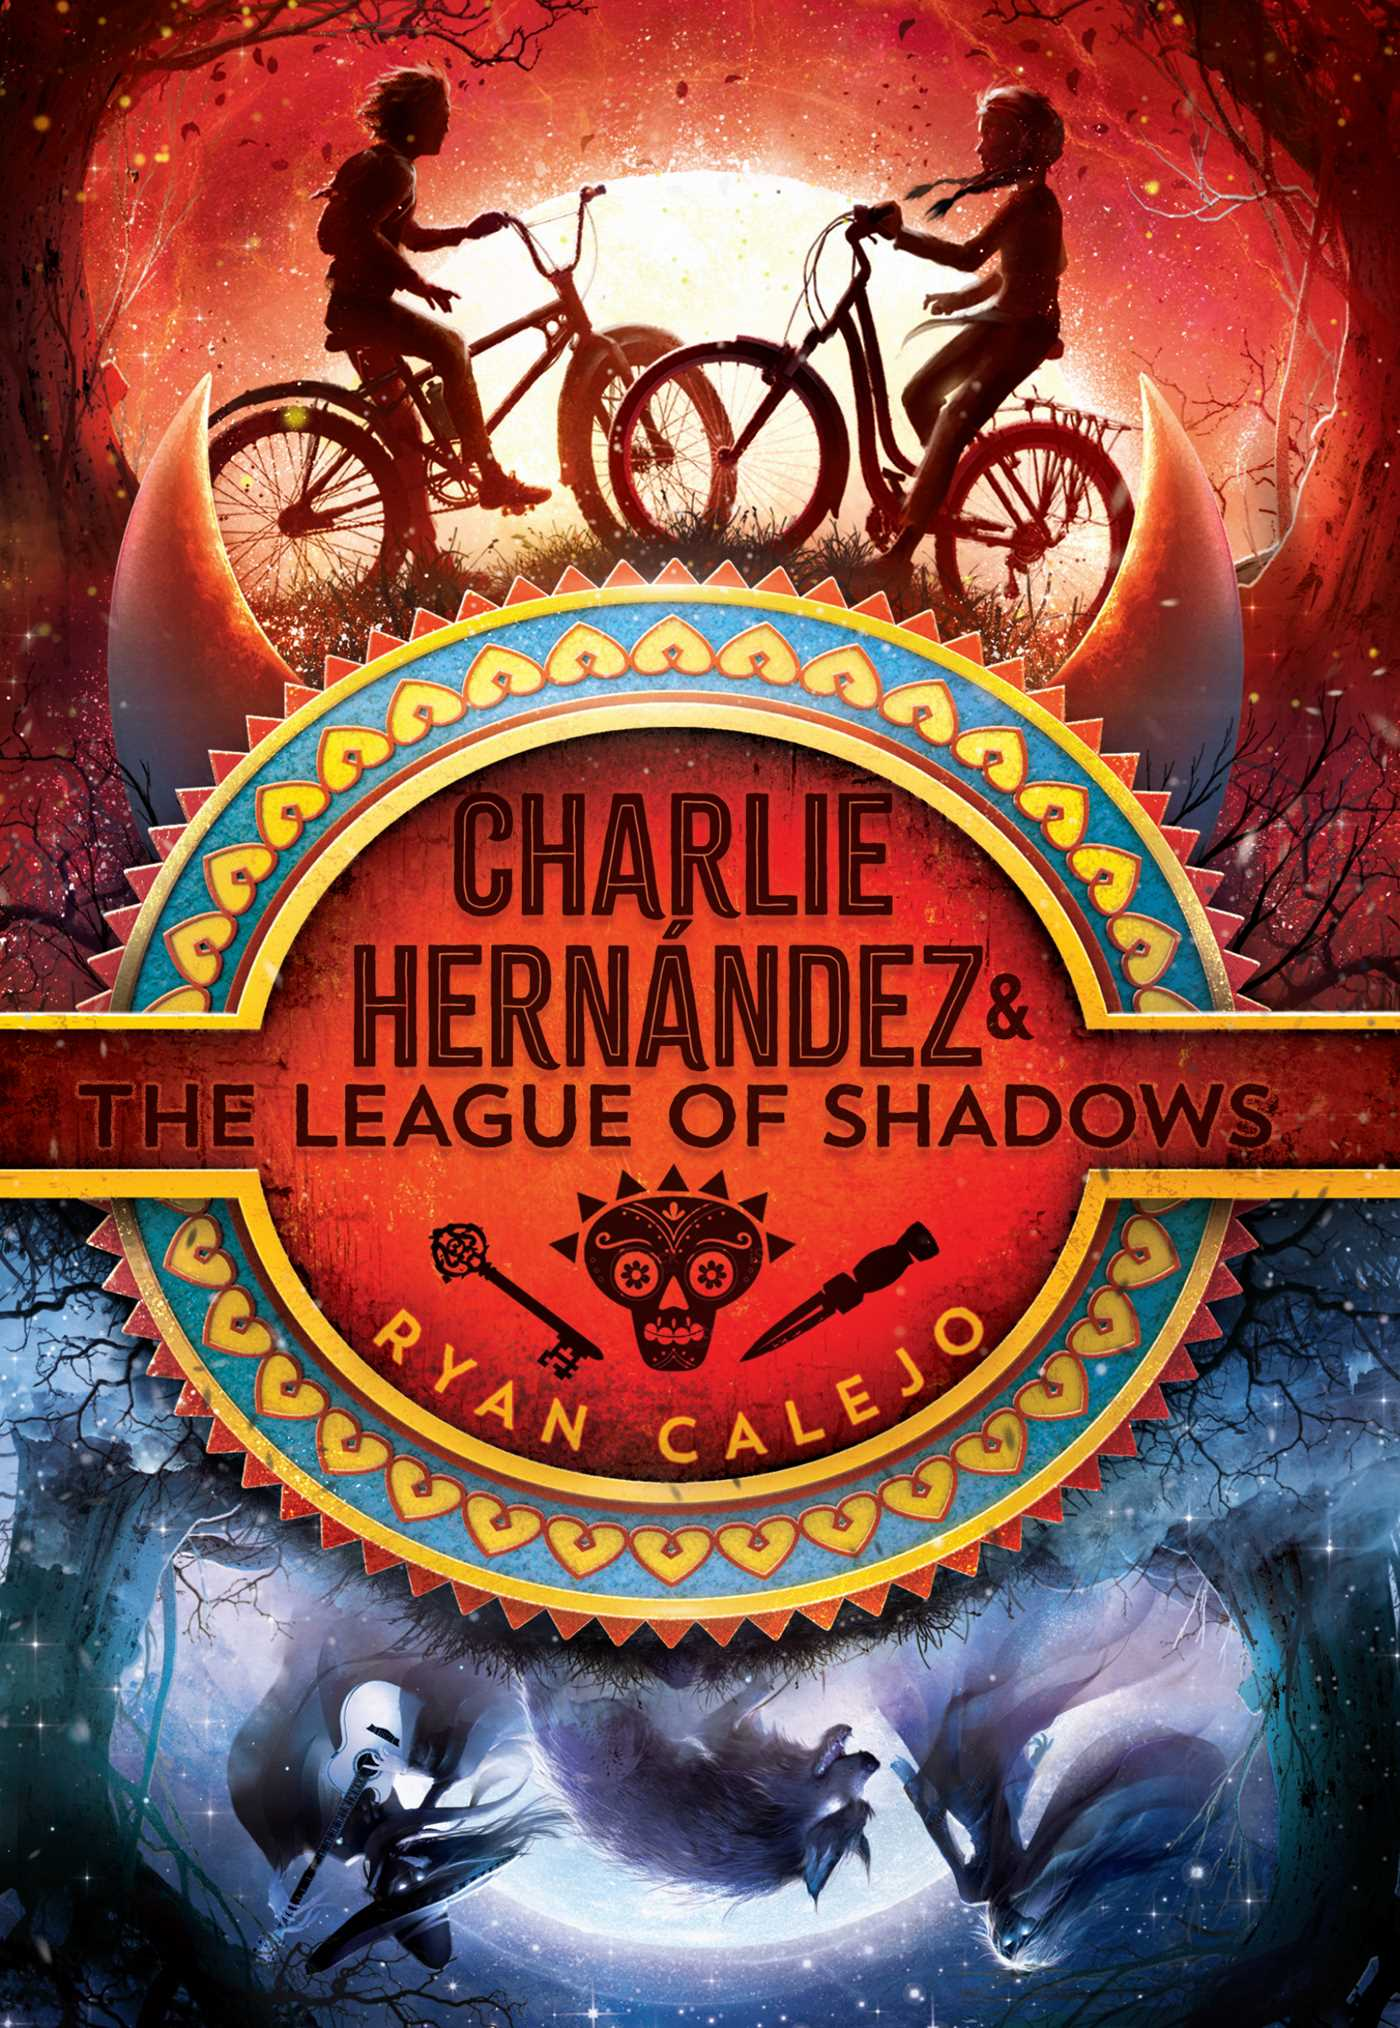 Charlie hernandez the league of shadows 9781534426580 hr